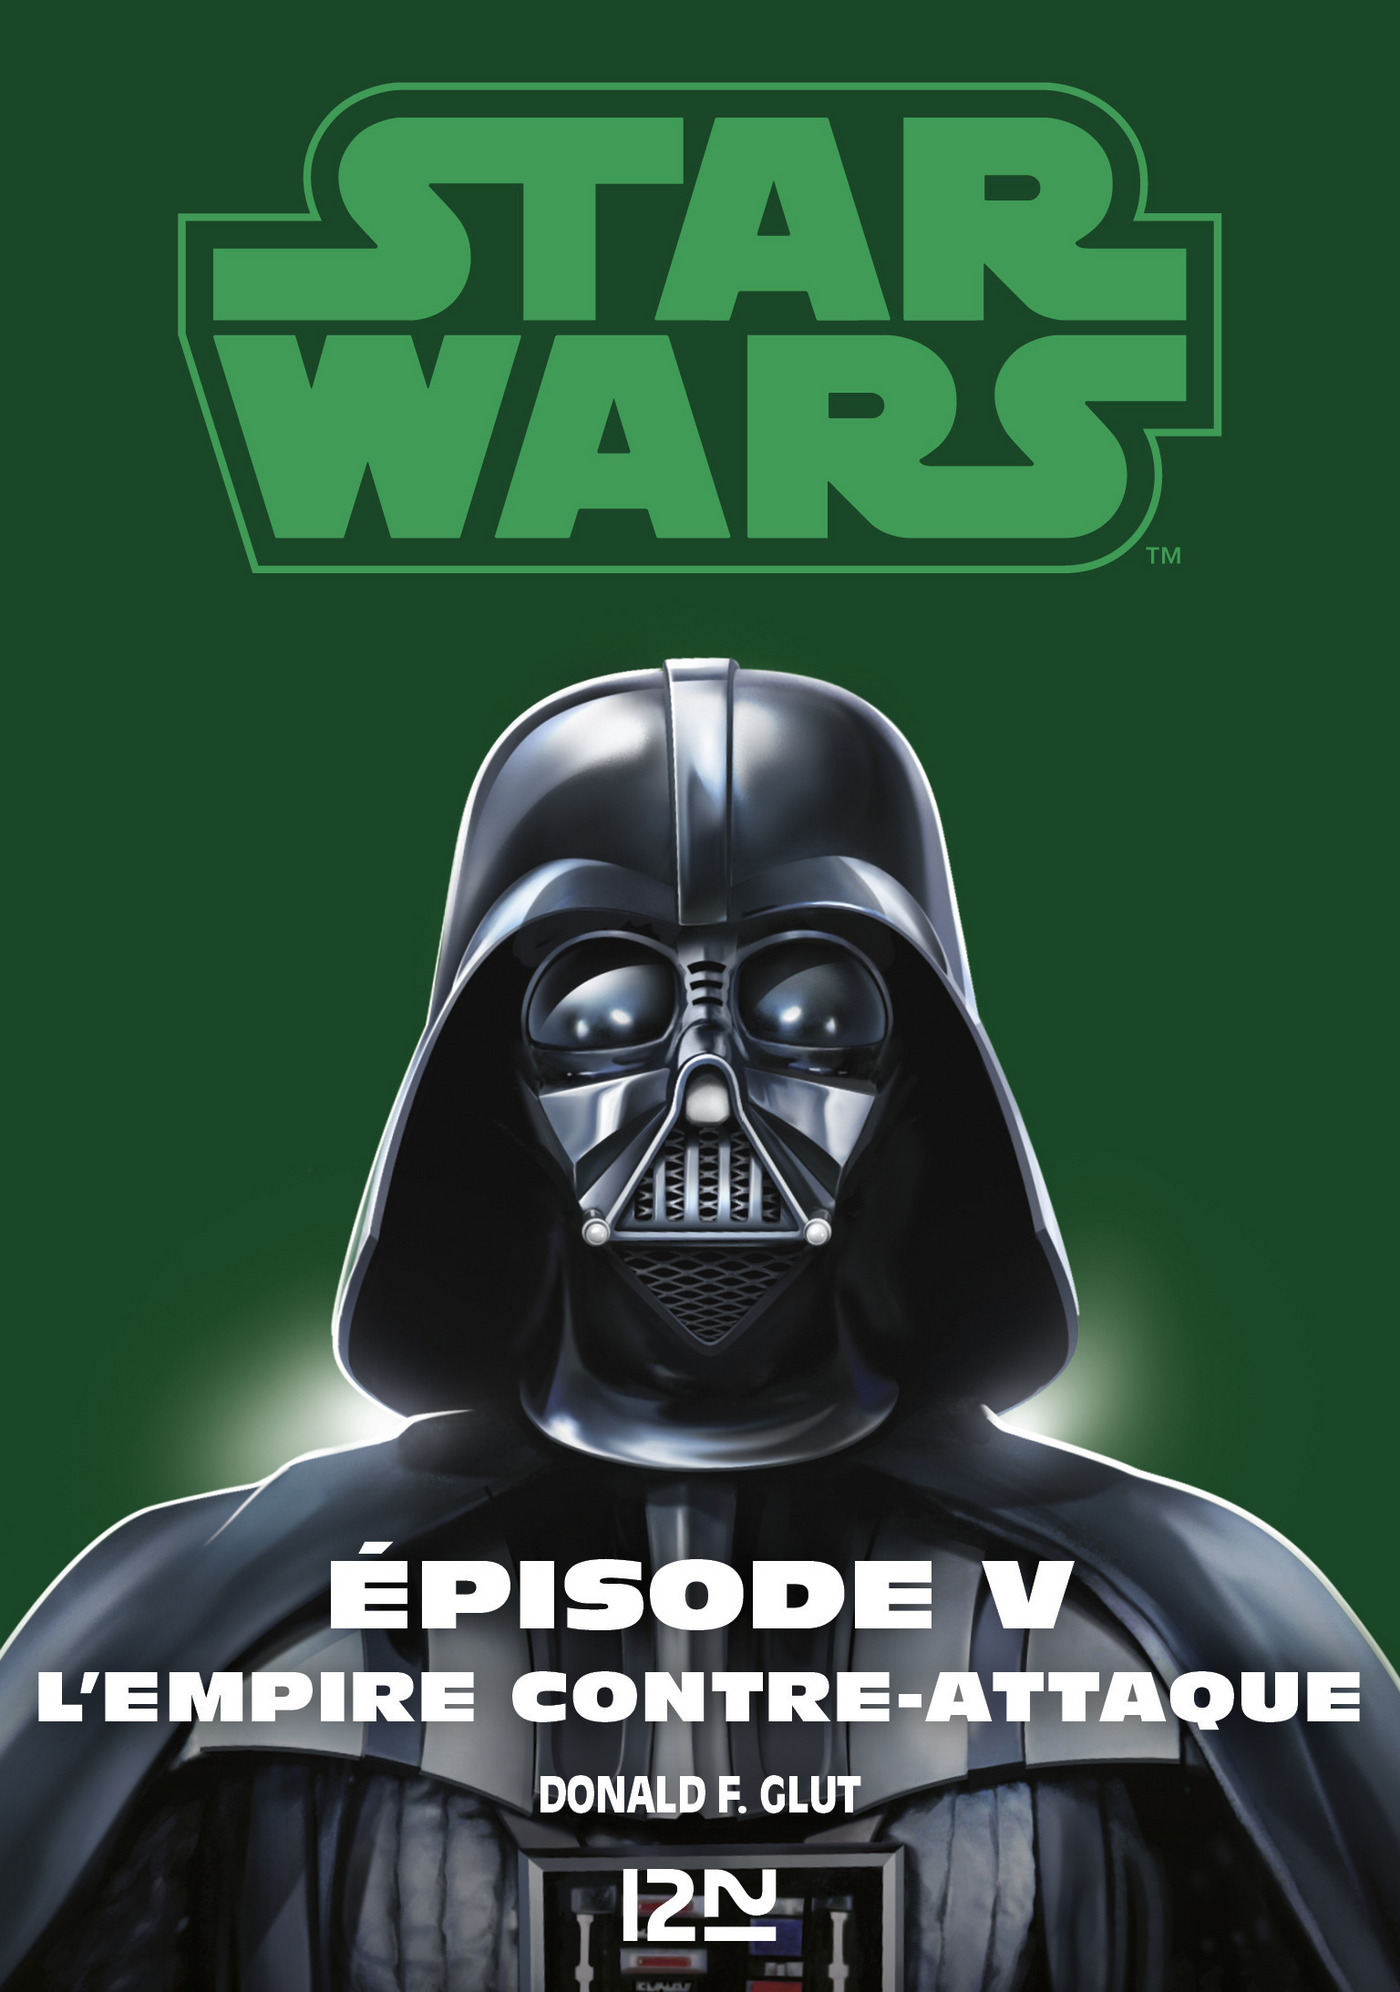 Star Wars épisode 5 : L'empire contre-attaque (ebook)